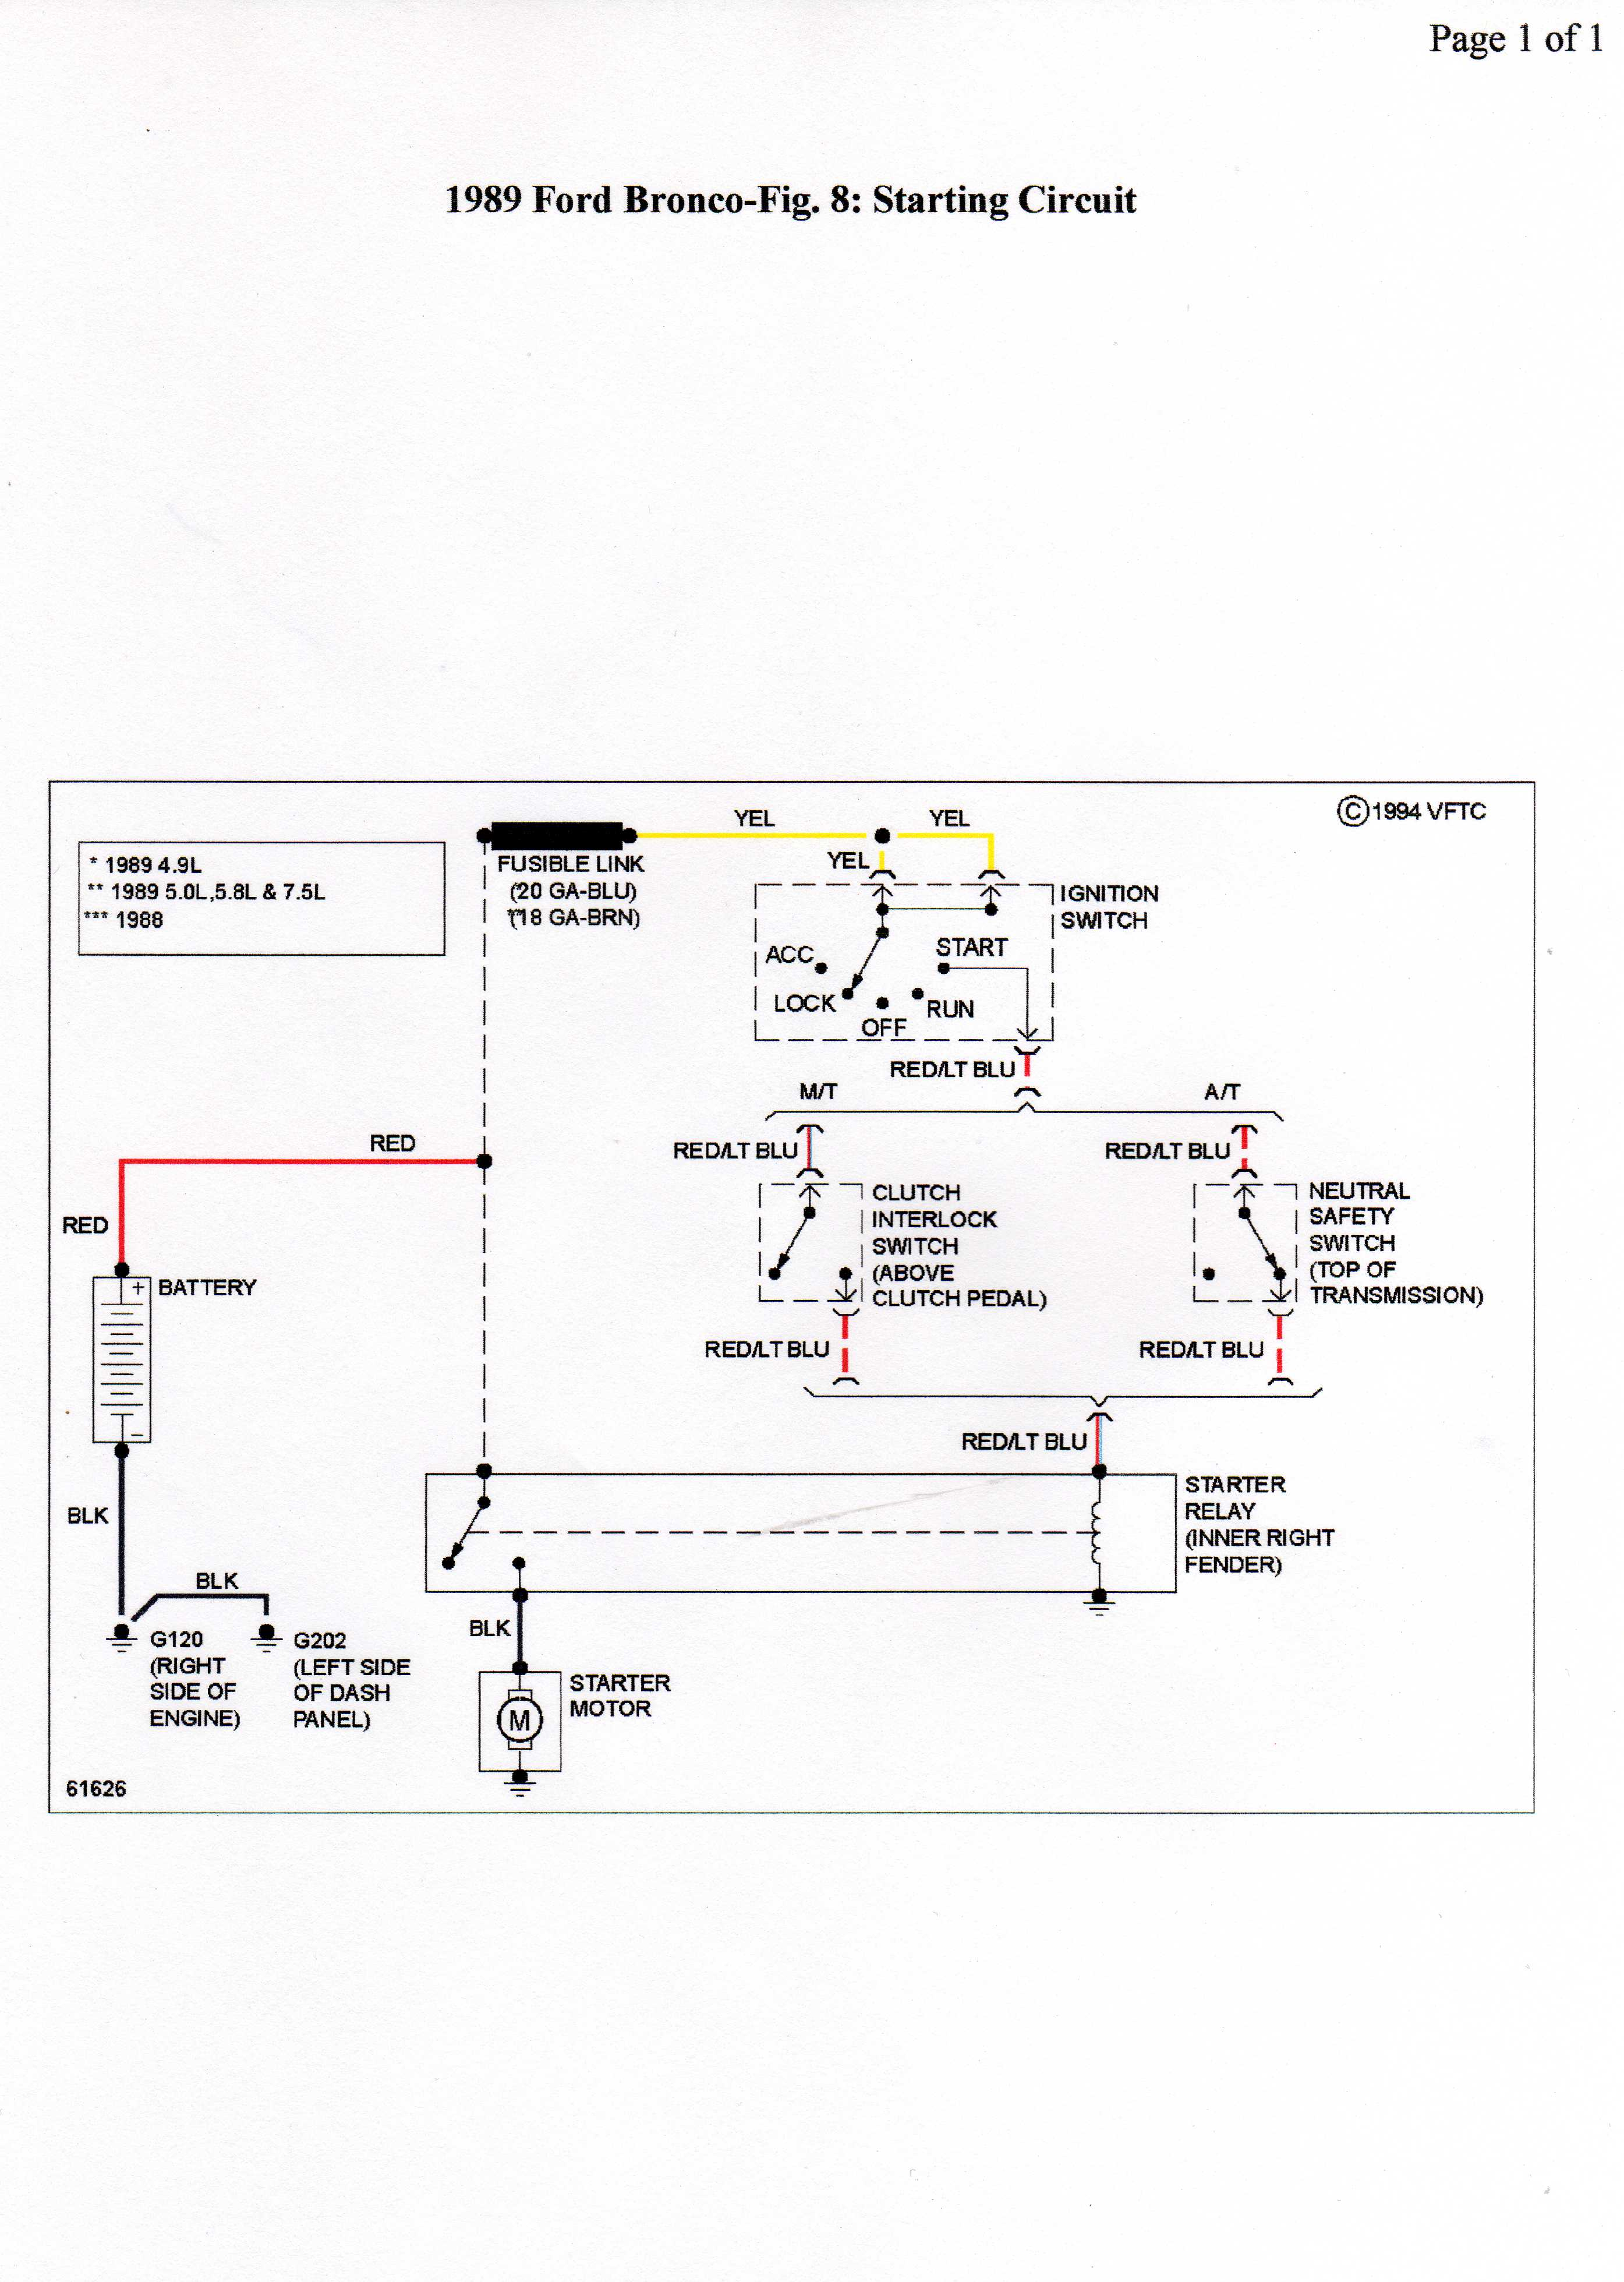 2011-05-06_022706_img027  Ford Starter Wiring Diagram on 89 ford engine, 89 ford f350 powerstroke, 89 ford electrical schematics, 89 ford clutch diagrams, 89 ford transfer case,